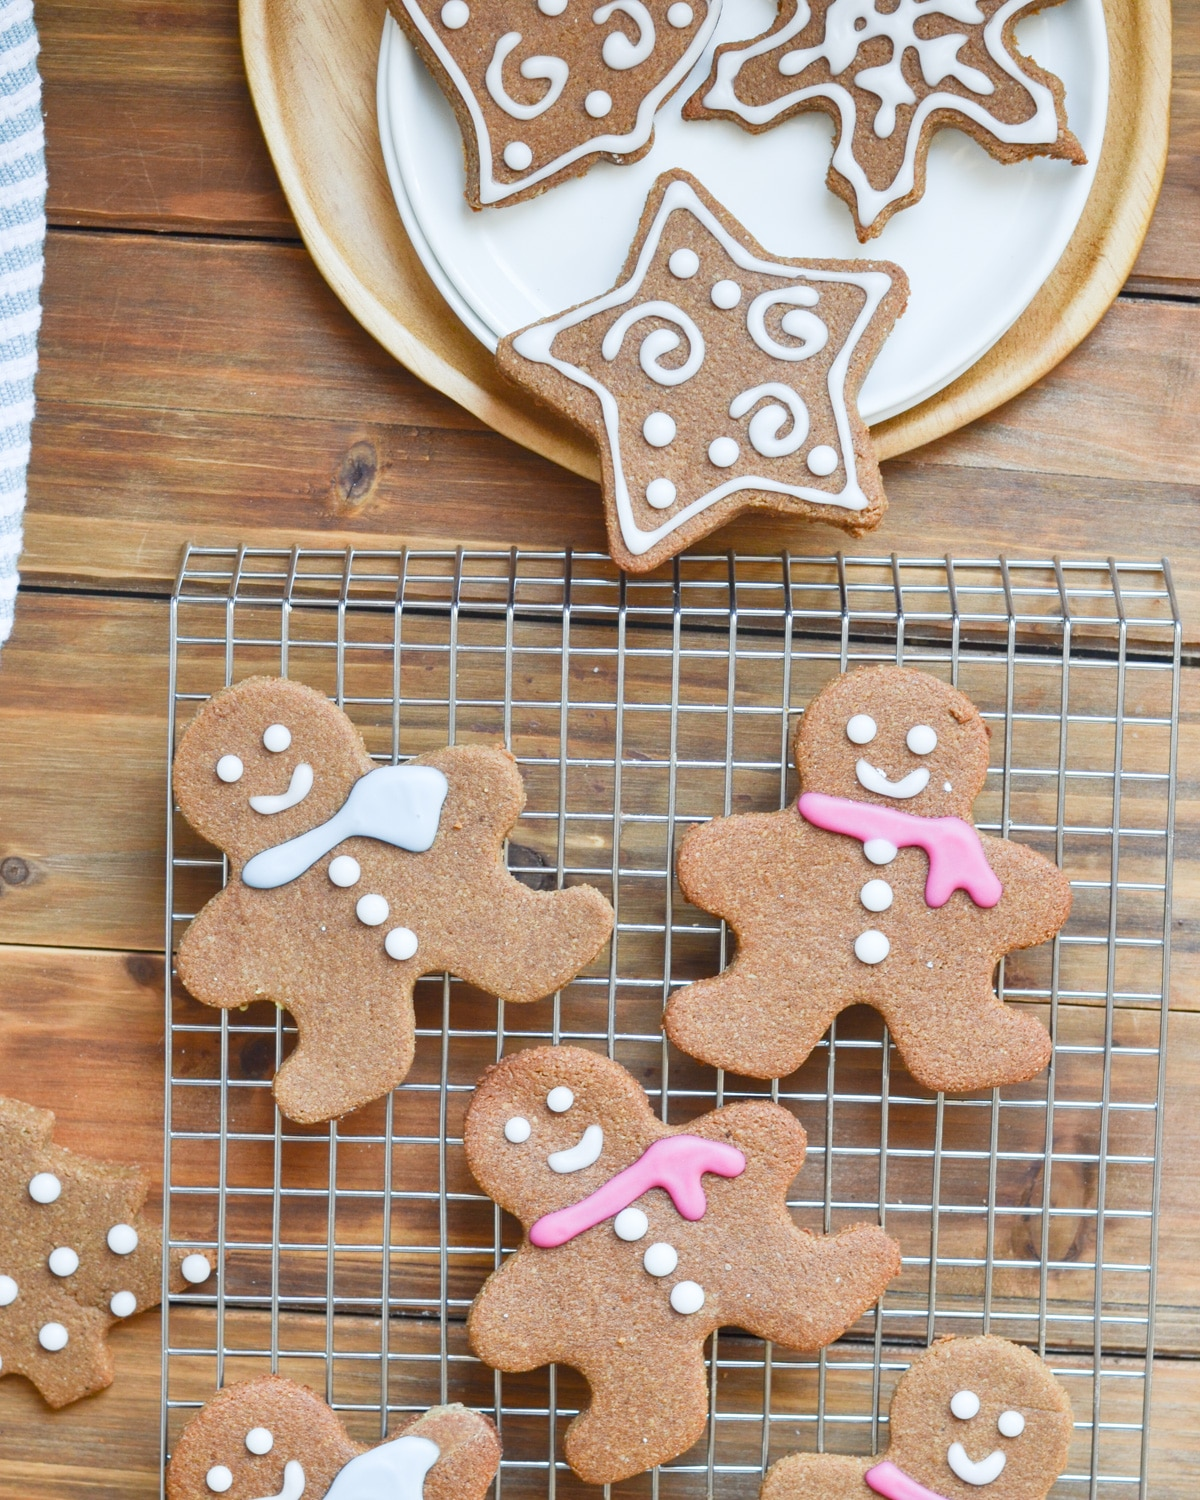 Decorated gingerbread cookies on cooling rack and plate.